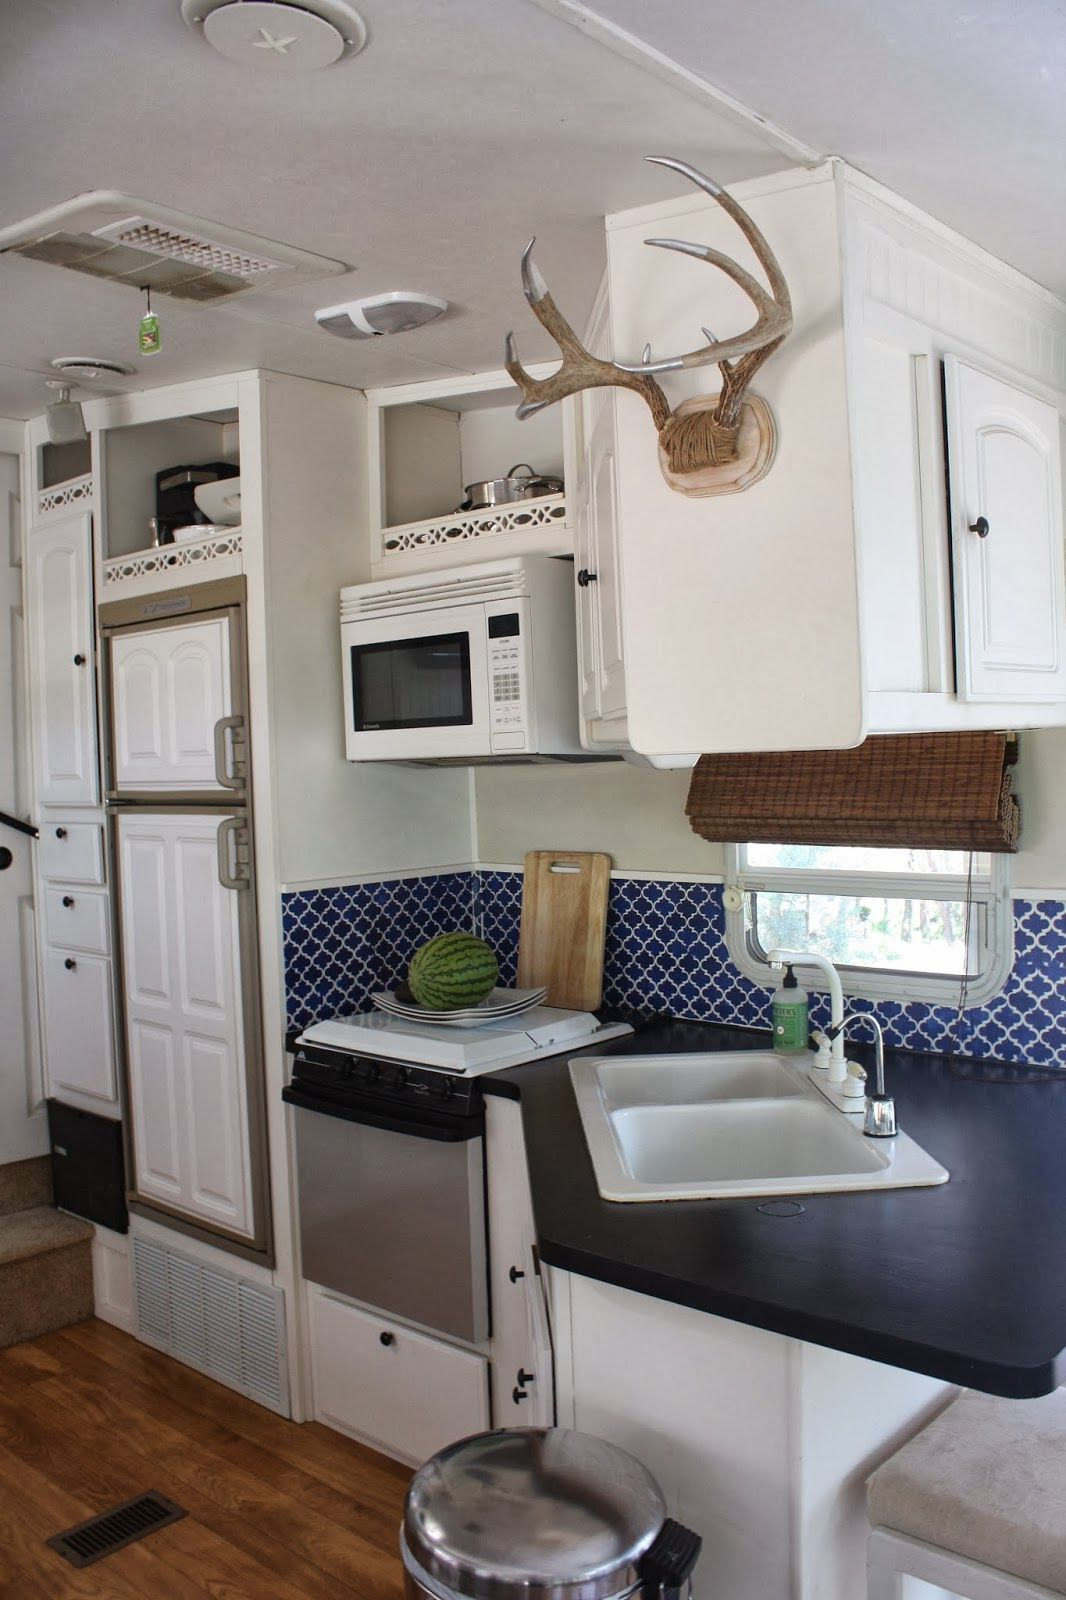 99 RV Kitchen Remodel And Renovation Ideas 17